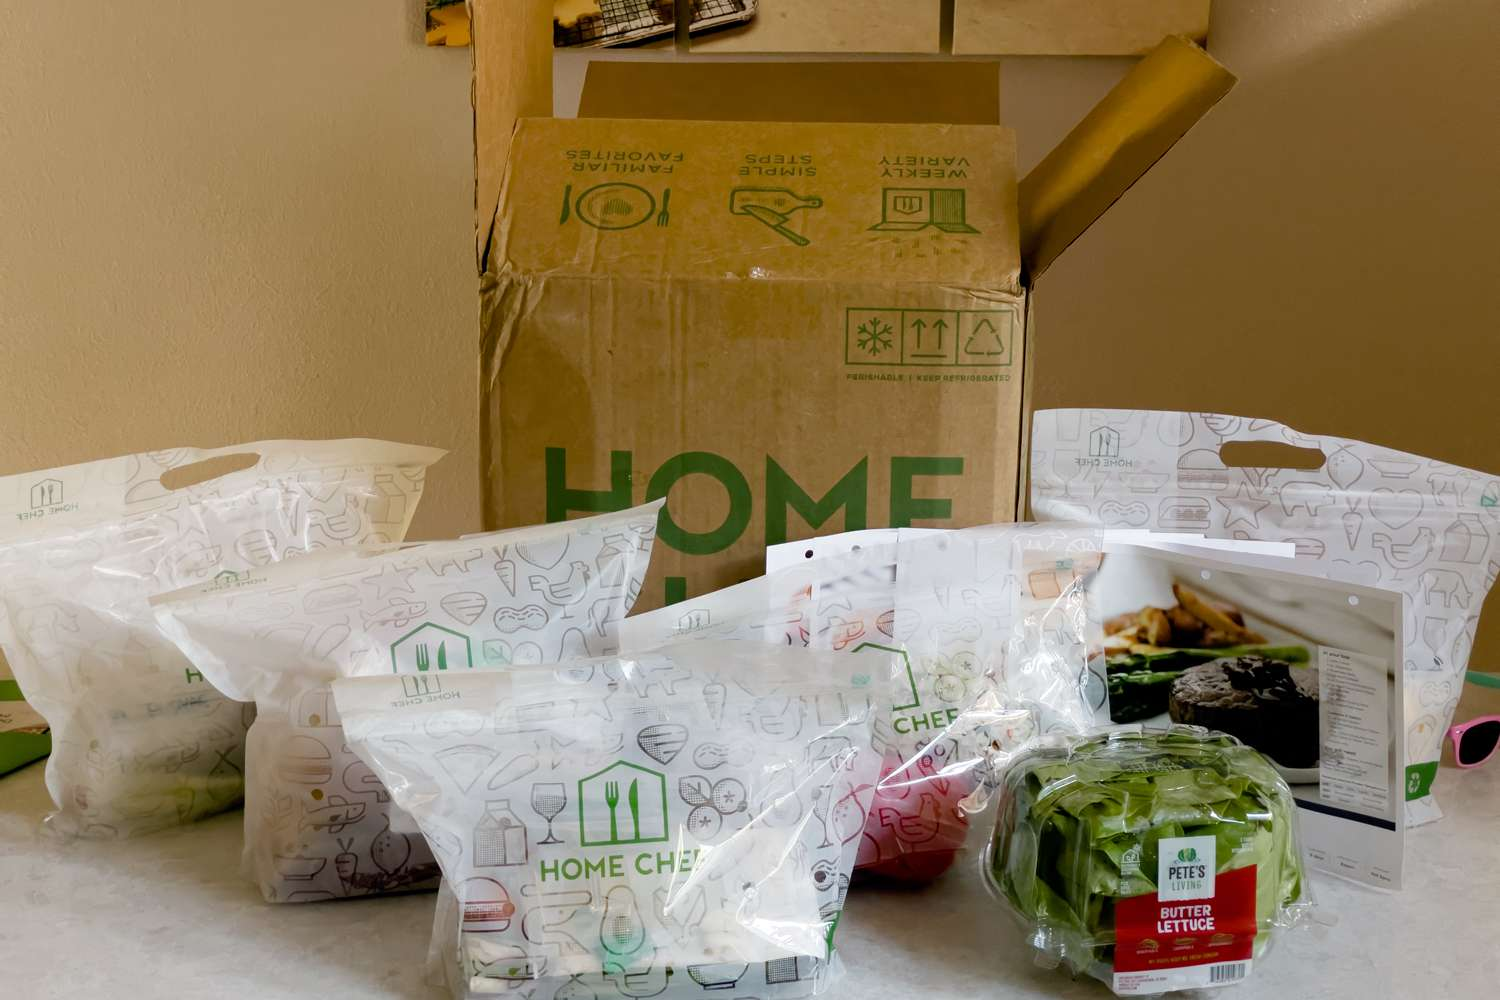 Home Chef packaging